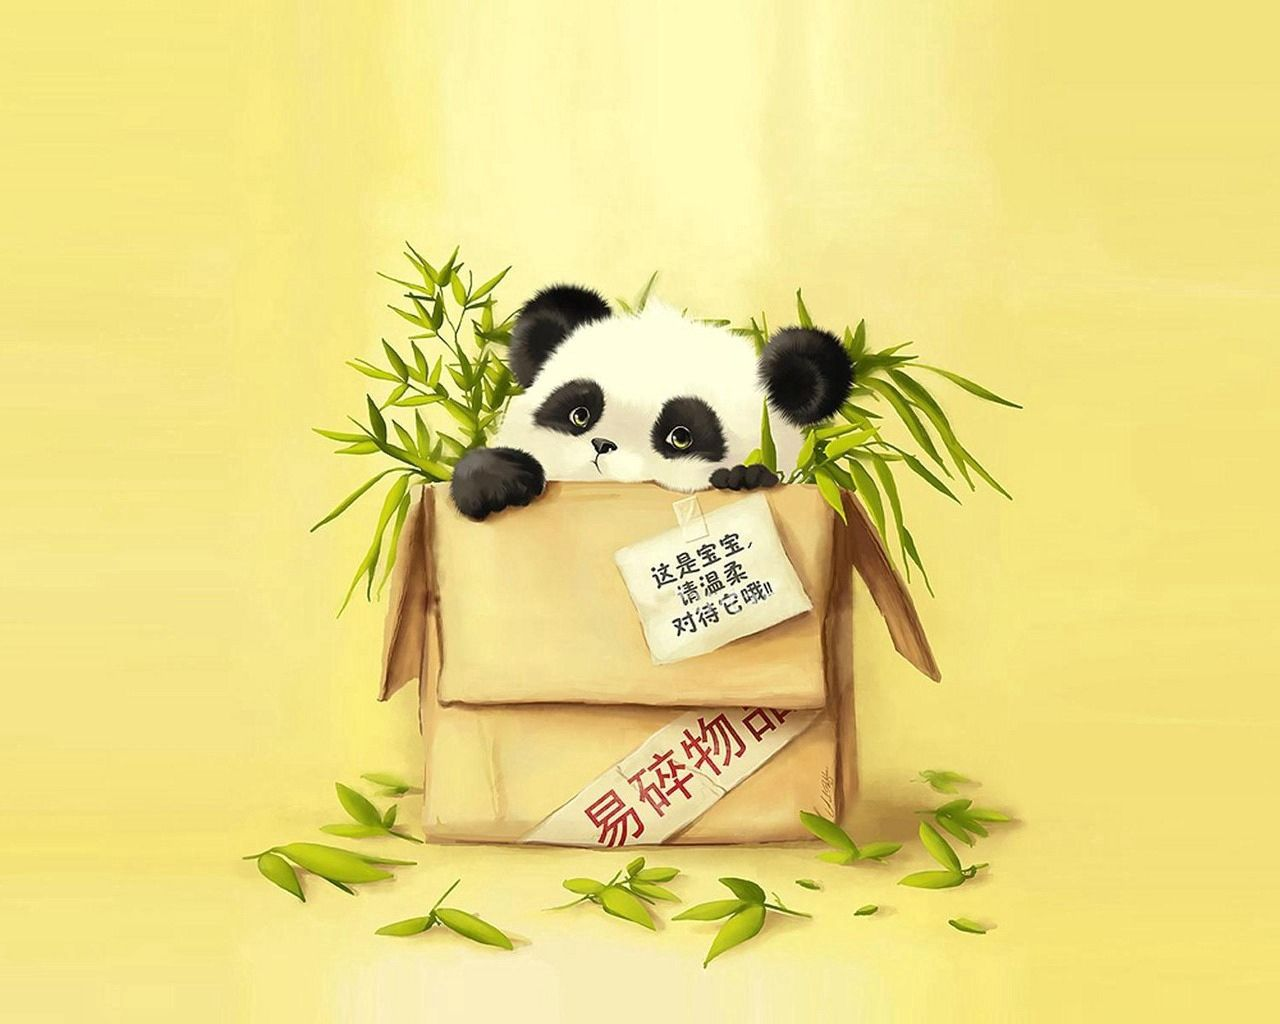 107249 download wallpaper Art, Box, Panda, Grass screensavers and pictures for free